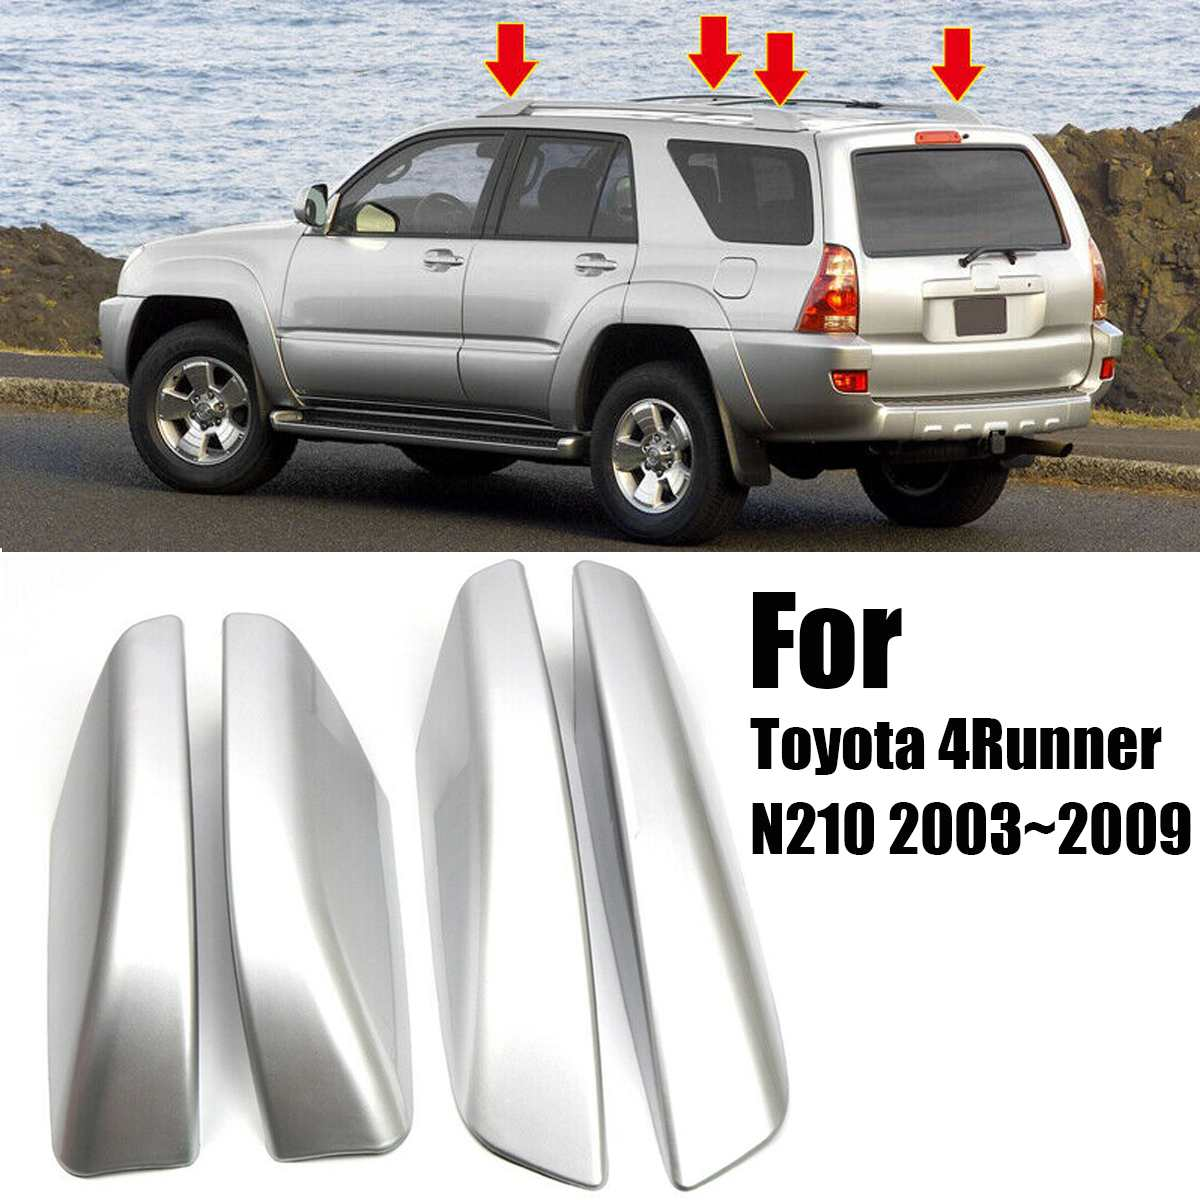 4PCS/Set Silver ABS Plastic Roof Rack Bar Rail End Replacement Cover Shell For Toyota 4Runner N210 2003~20094PCS/Set Silver ABS Plastic Roof Rack Bar Rail End Replacement Cover Shell For Toyota 4Runner N210 2003~2009